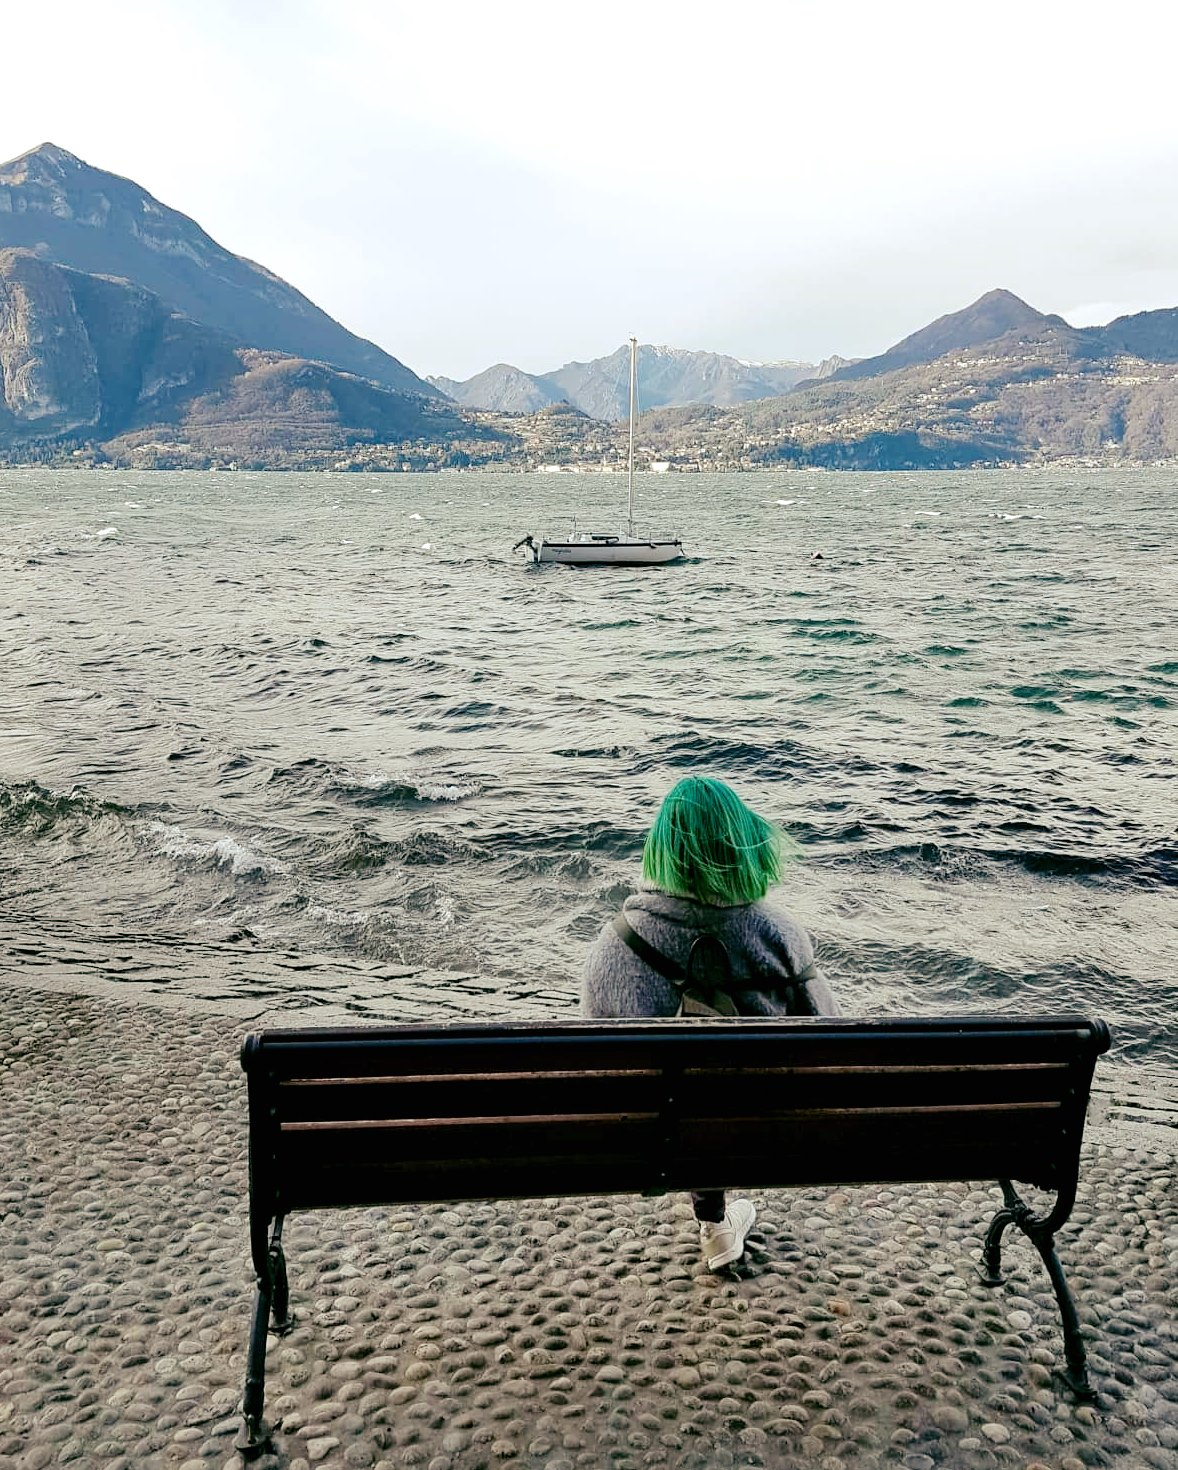 Penny sitting on the bench looking out to a wonderful mountain and water view